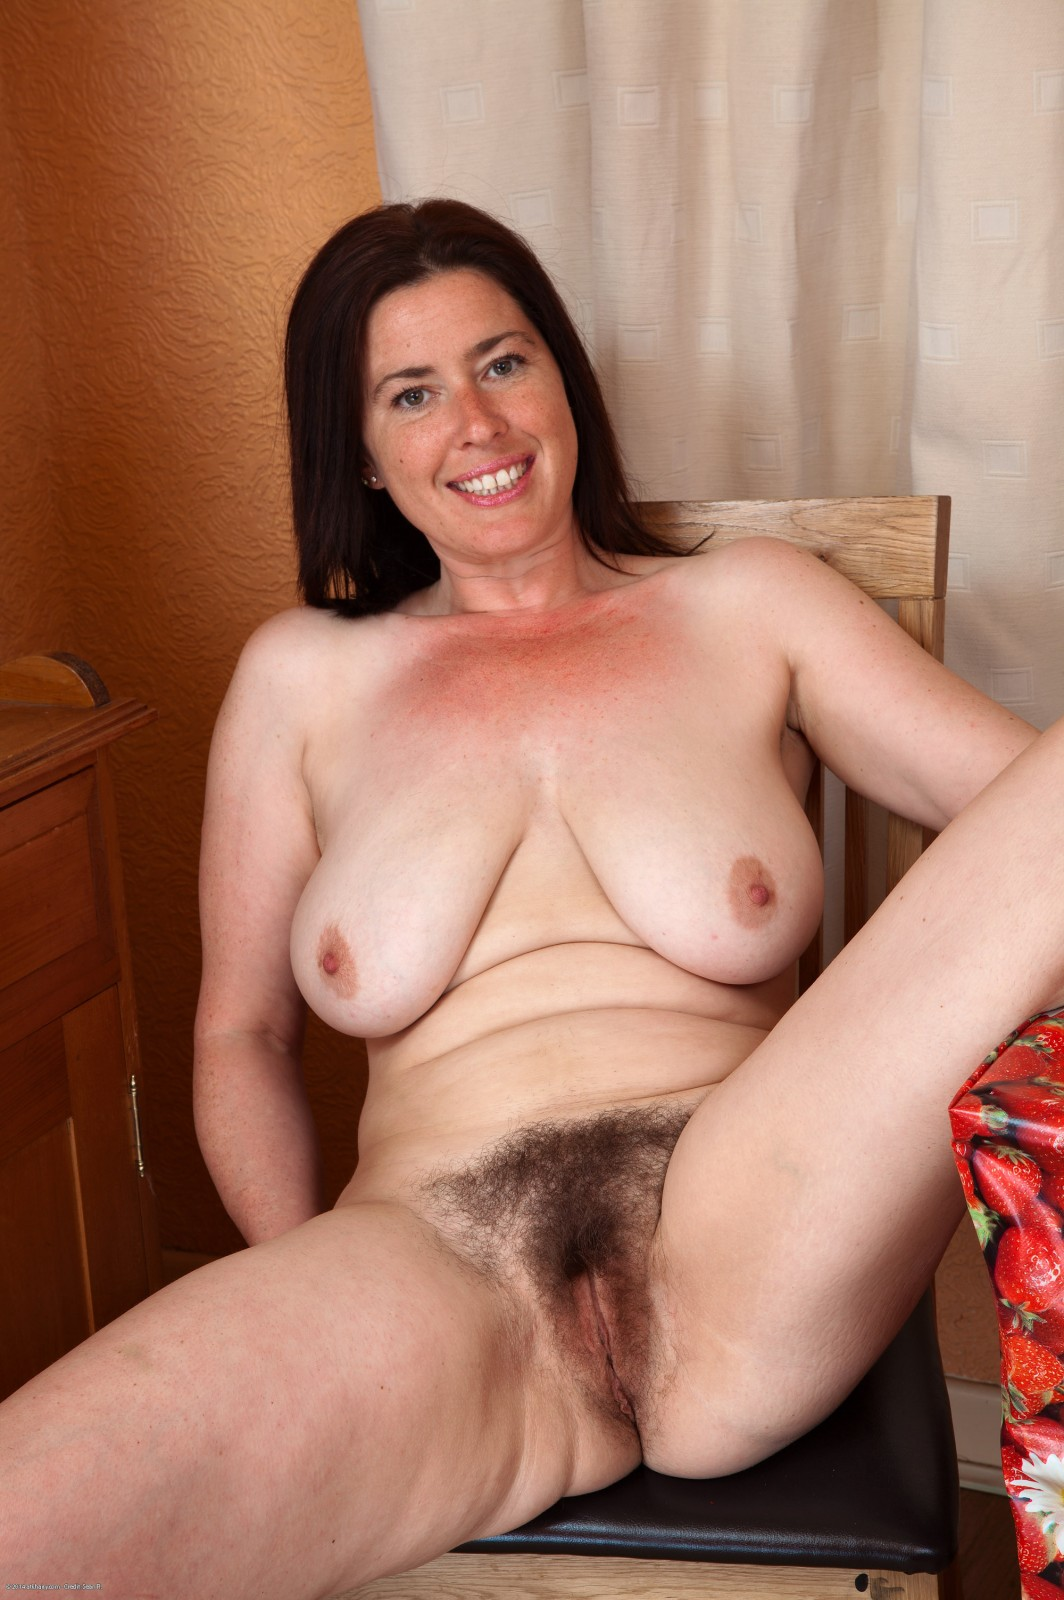 Cougar head 72 on her knees 7